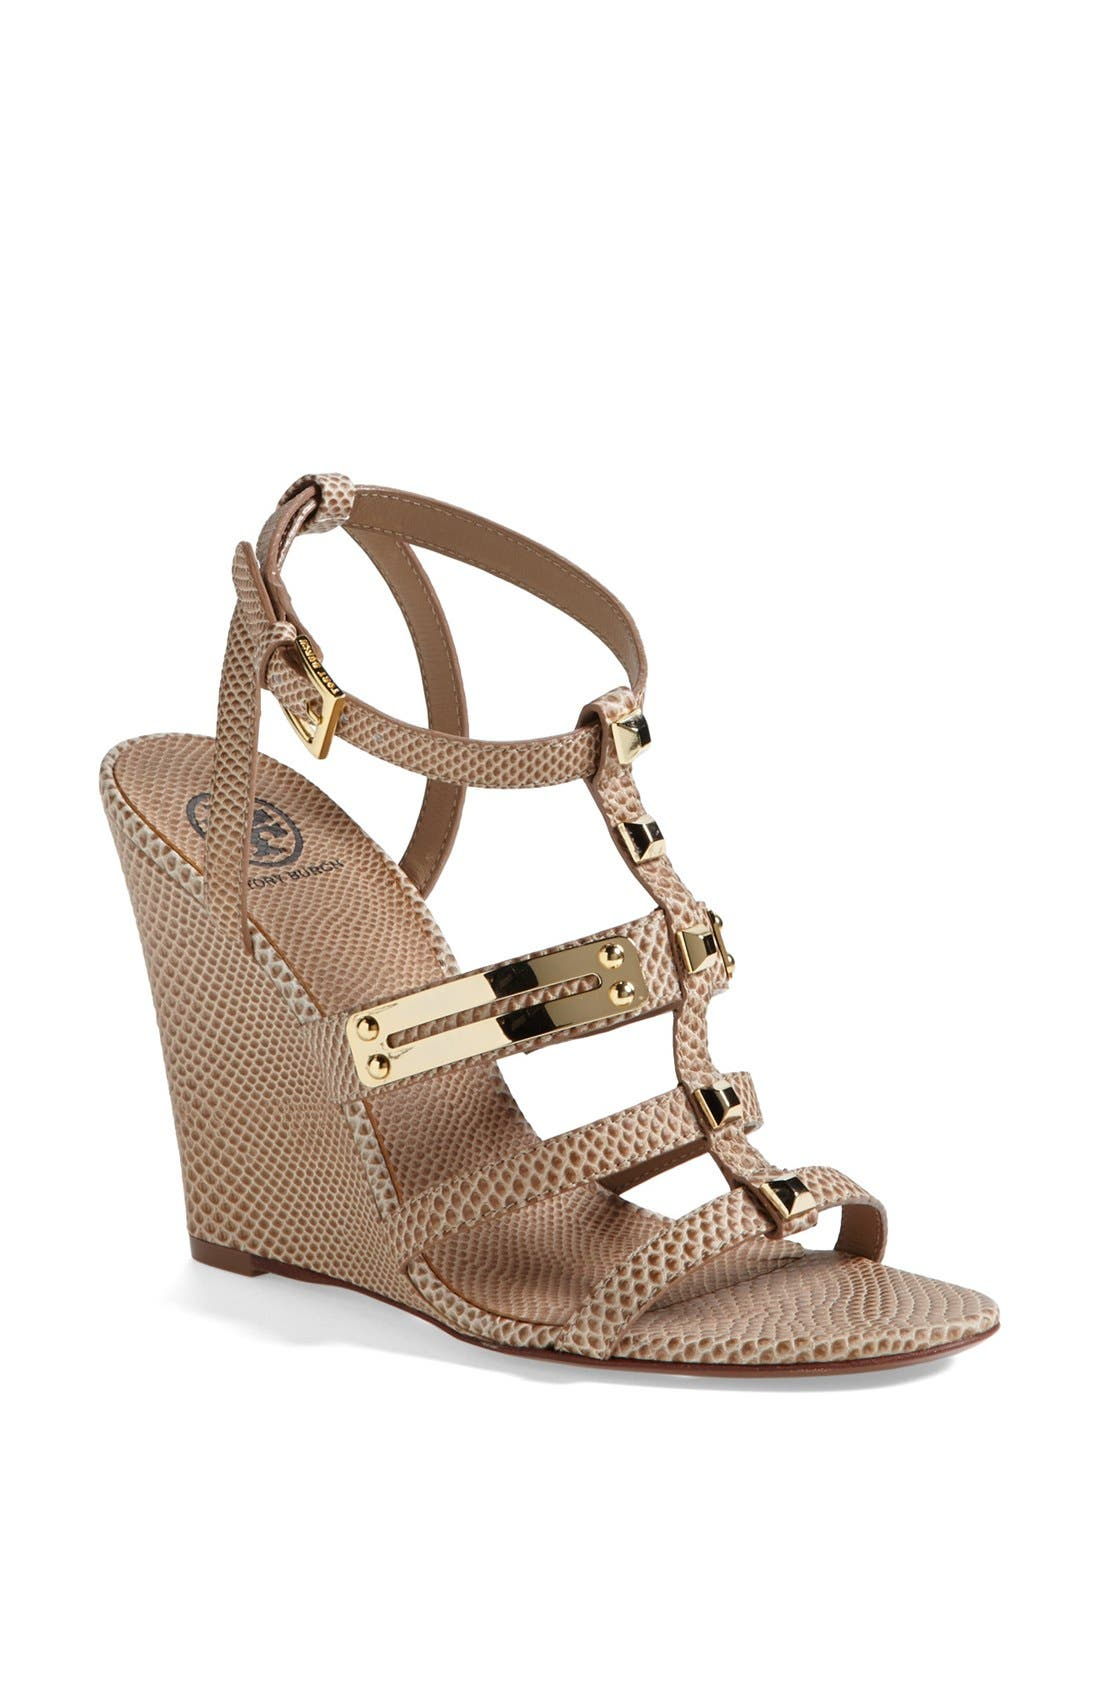 Alternate Image 1 Selected - Tory Burch 'Iliana' Wedge Sandal (Online Only)